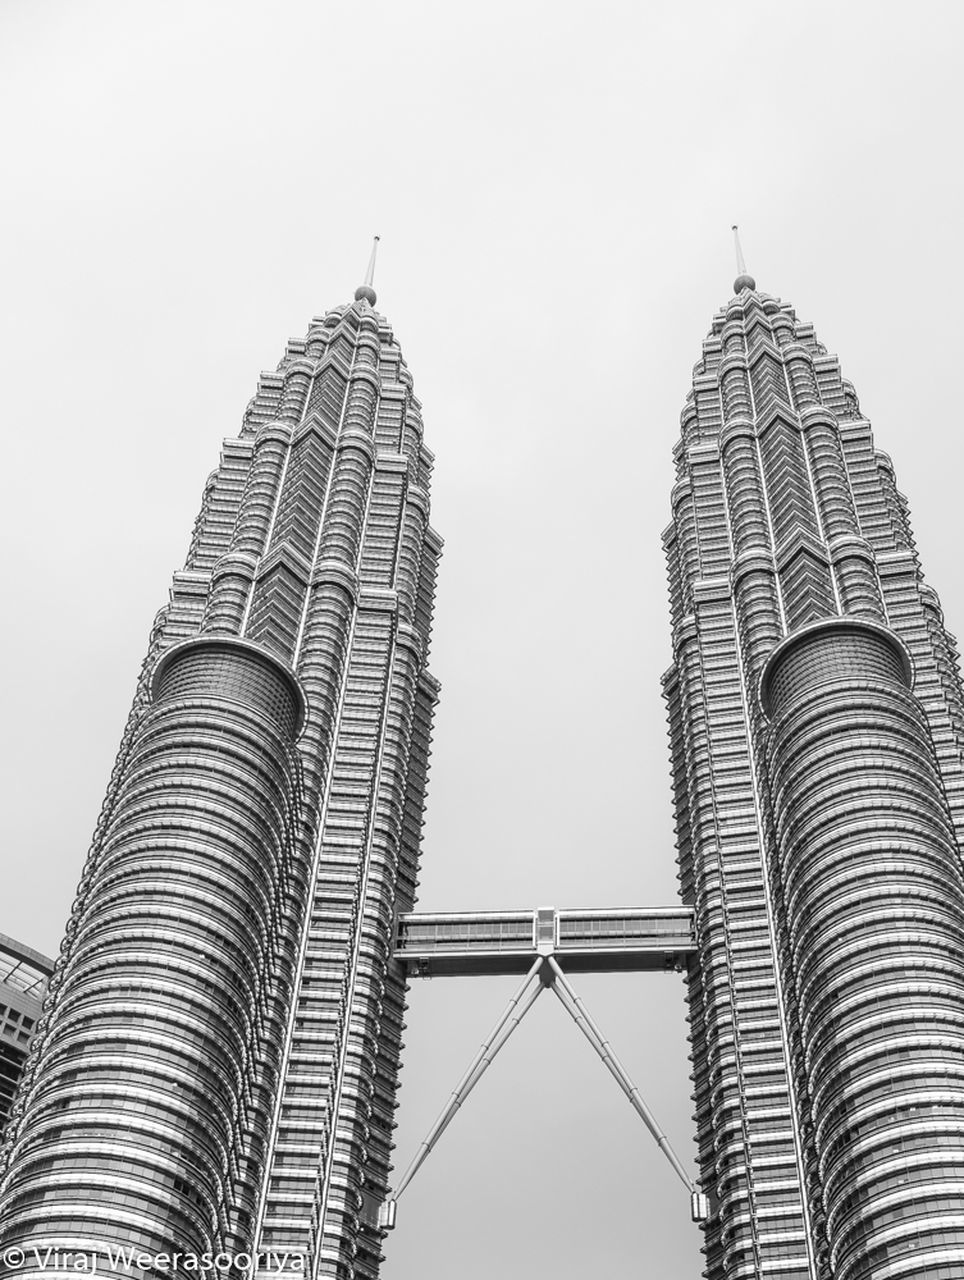 architecture, built structure, travel destinations, building exterior, low angle view, tall - high, tourism, travel, tower, skyscraper, outdoors, day, modern, city, clear sky, no people, sky